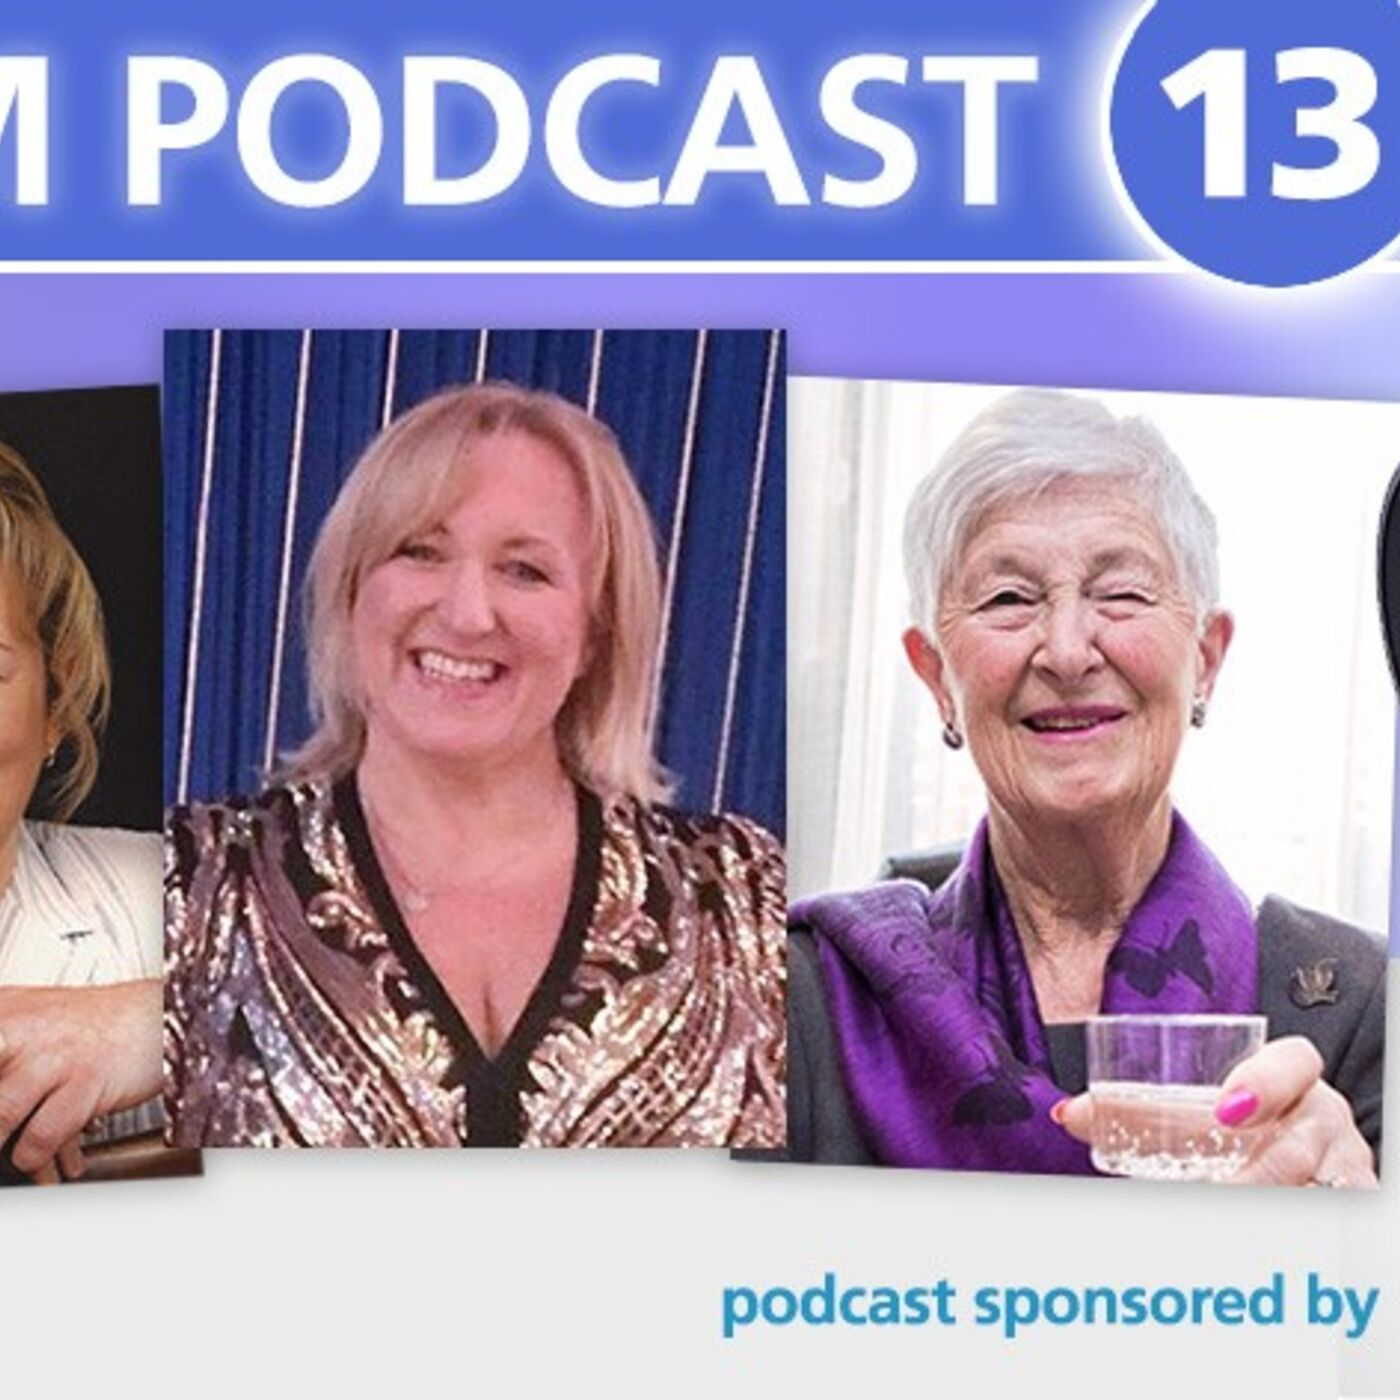 Care Home Management podcast featuring Michael McIntyre's Big Show, World War II & choosing a care home